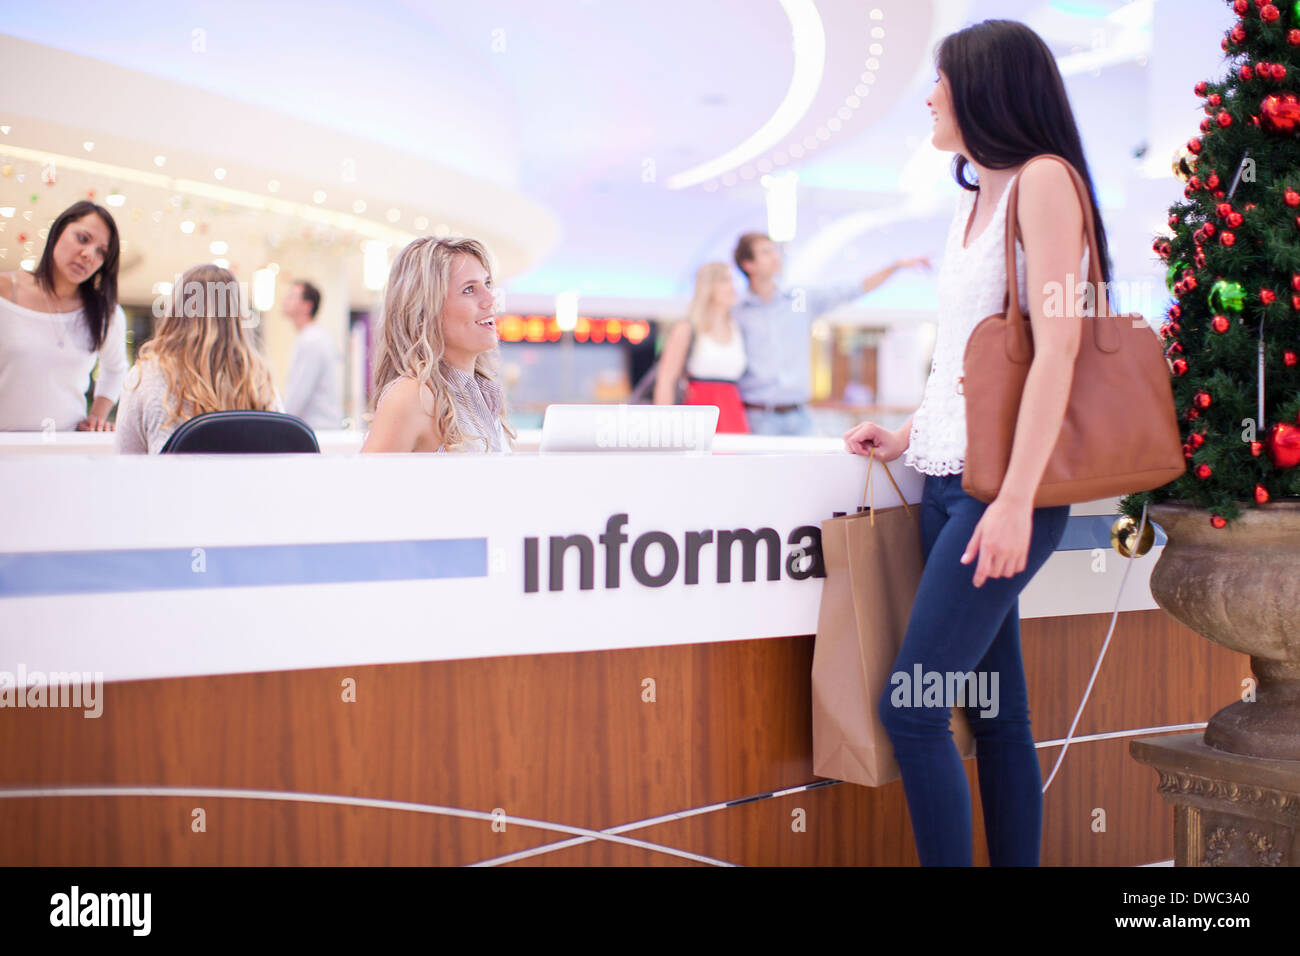 Young woman at information desk in mall - Stock Image